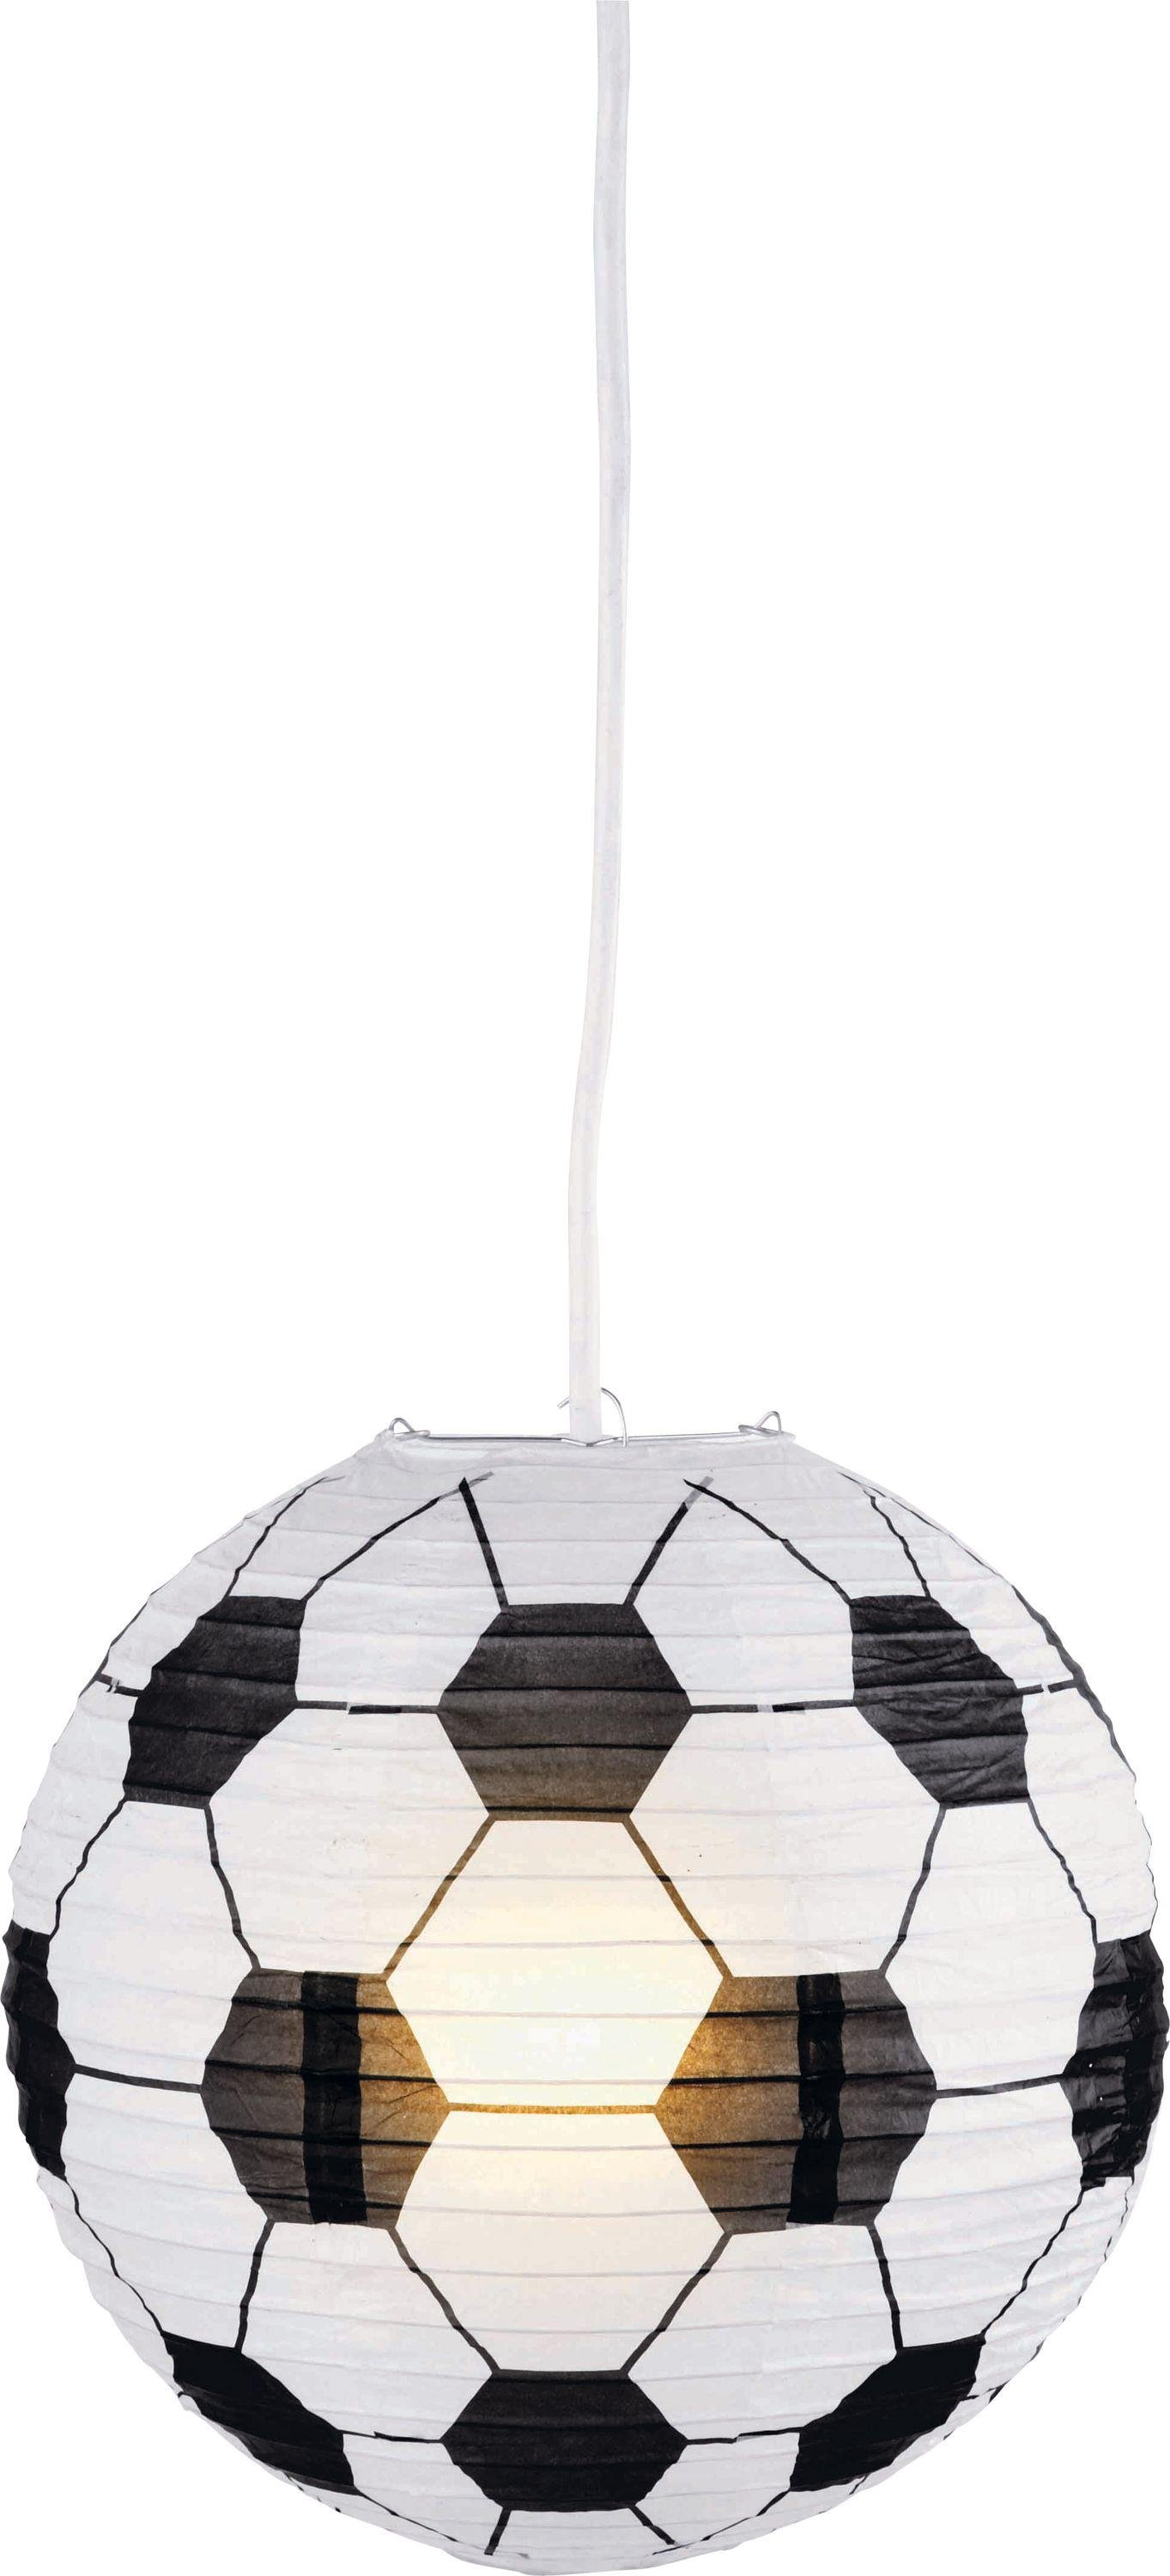 lightest football essay Basketball and football both use a lightweight ball during play although they are  the same color, the shape and material for which they are made is different.